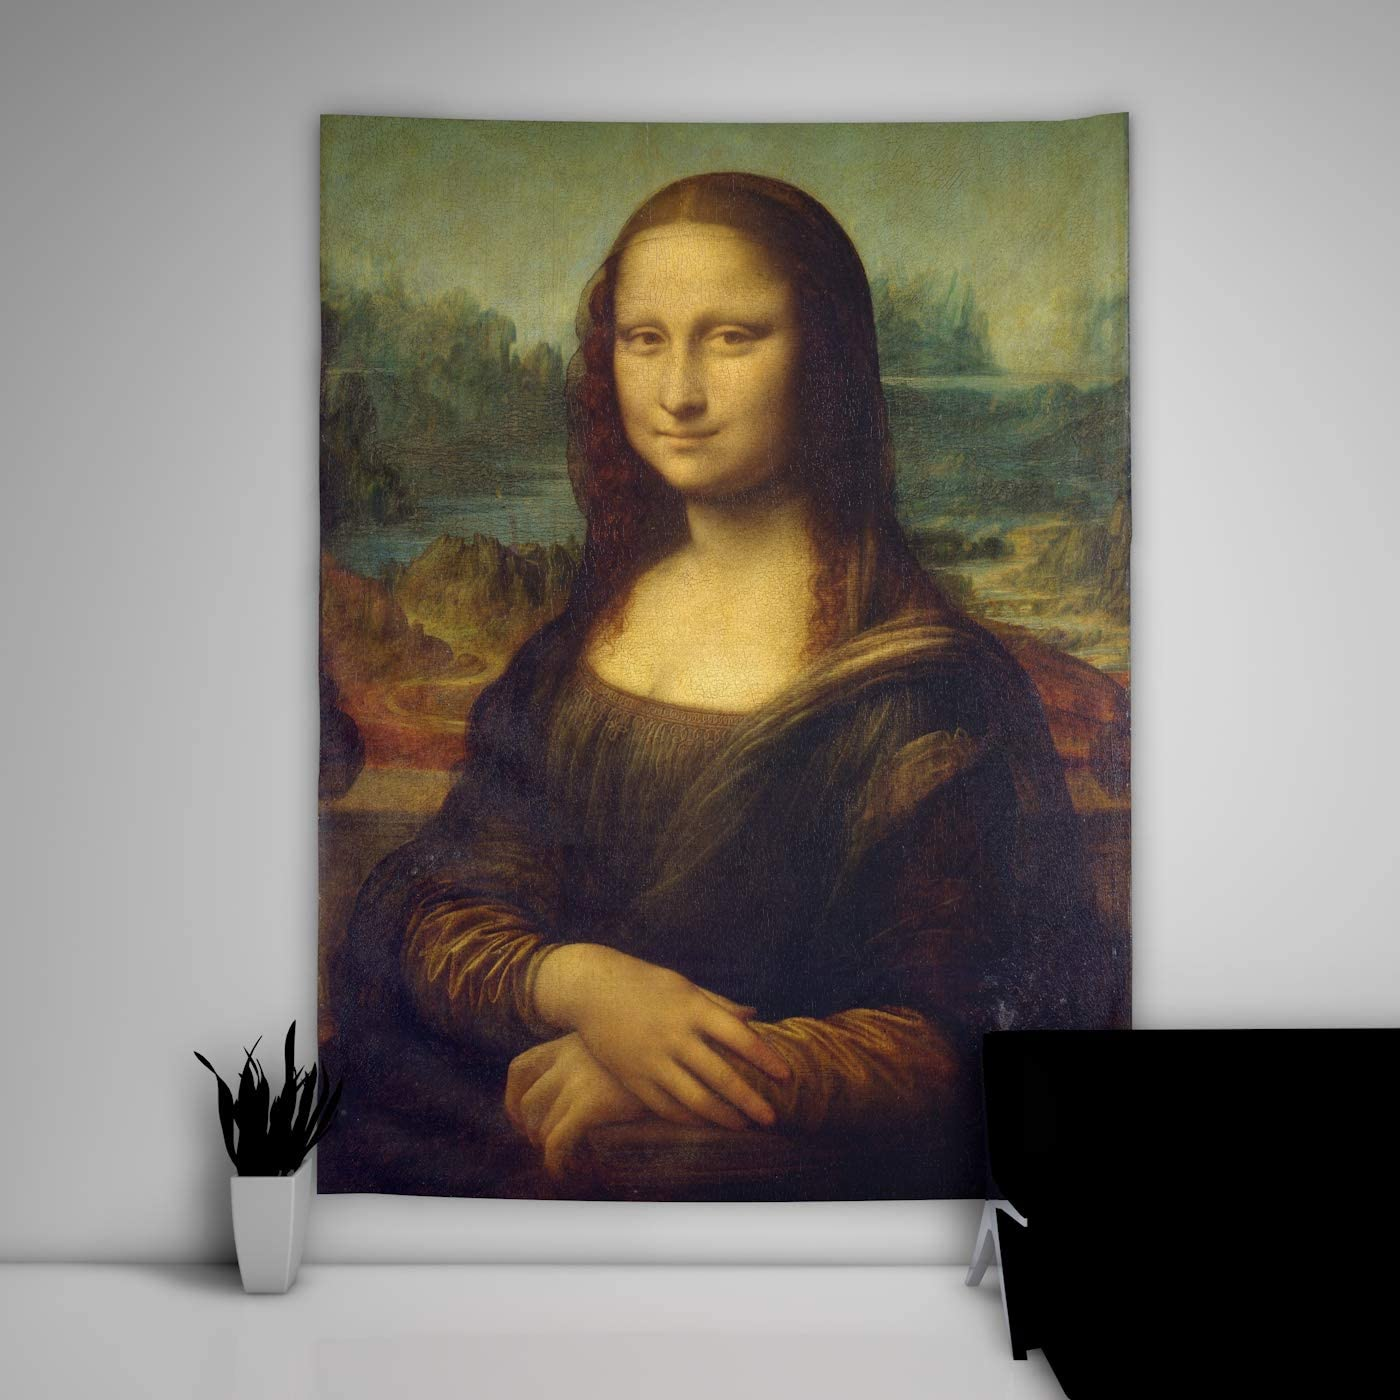 unbrand Mona Lisa Tapestry Art Wall Hanging Sofa Table Bed Cover Mural Beach Blanket Home Dorm Room Decor Gift